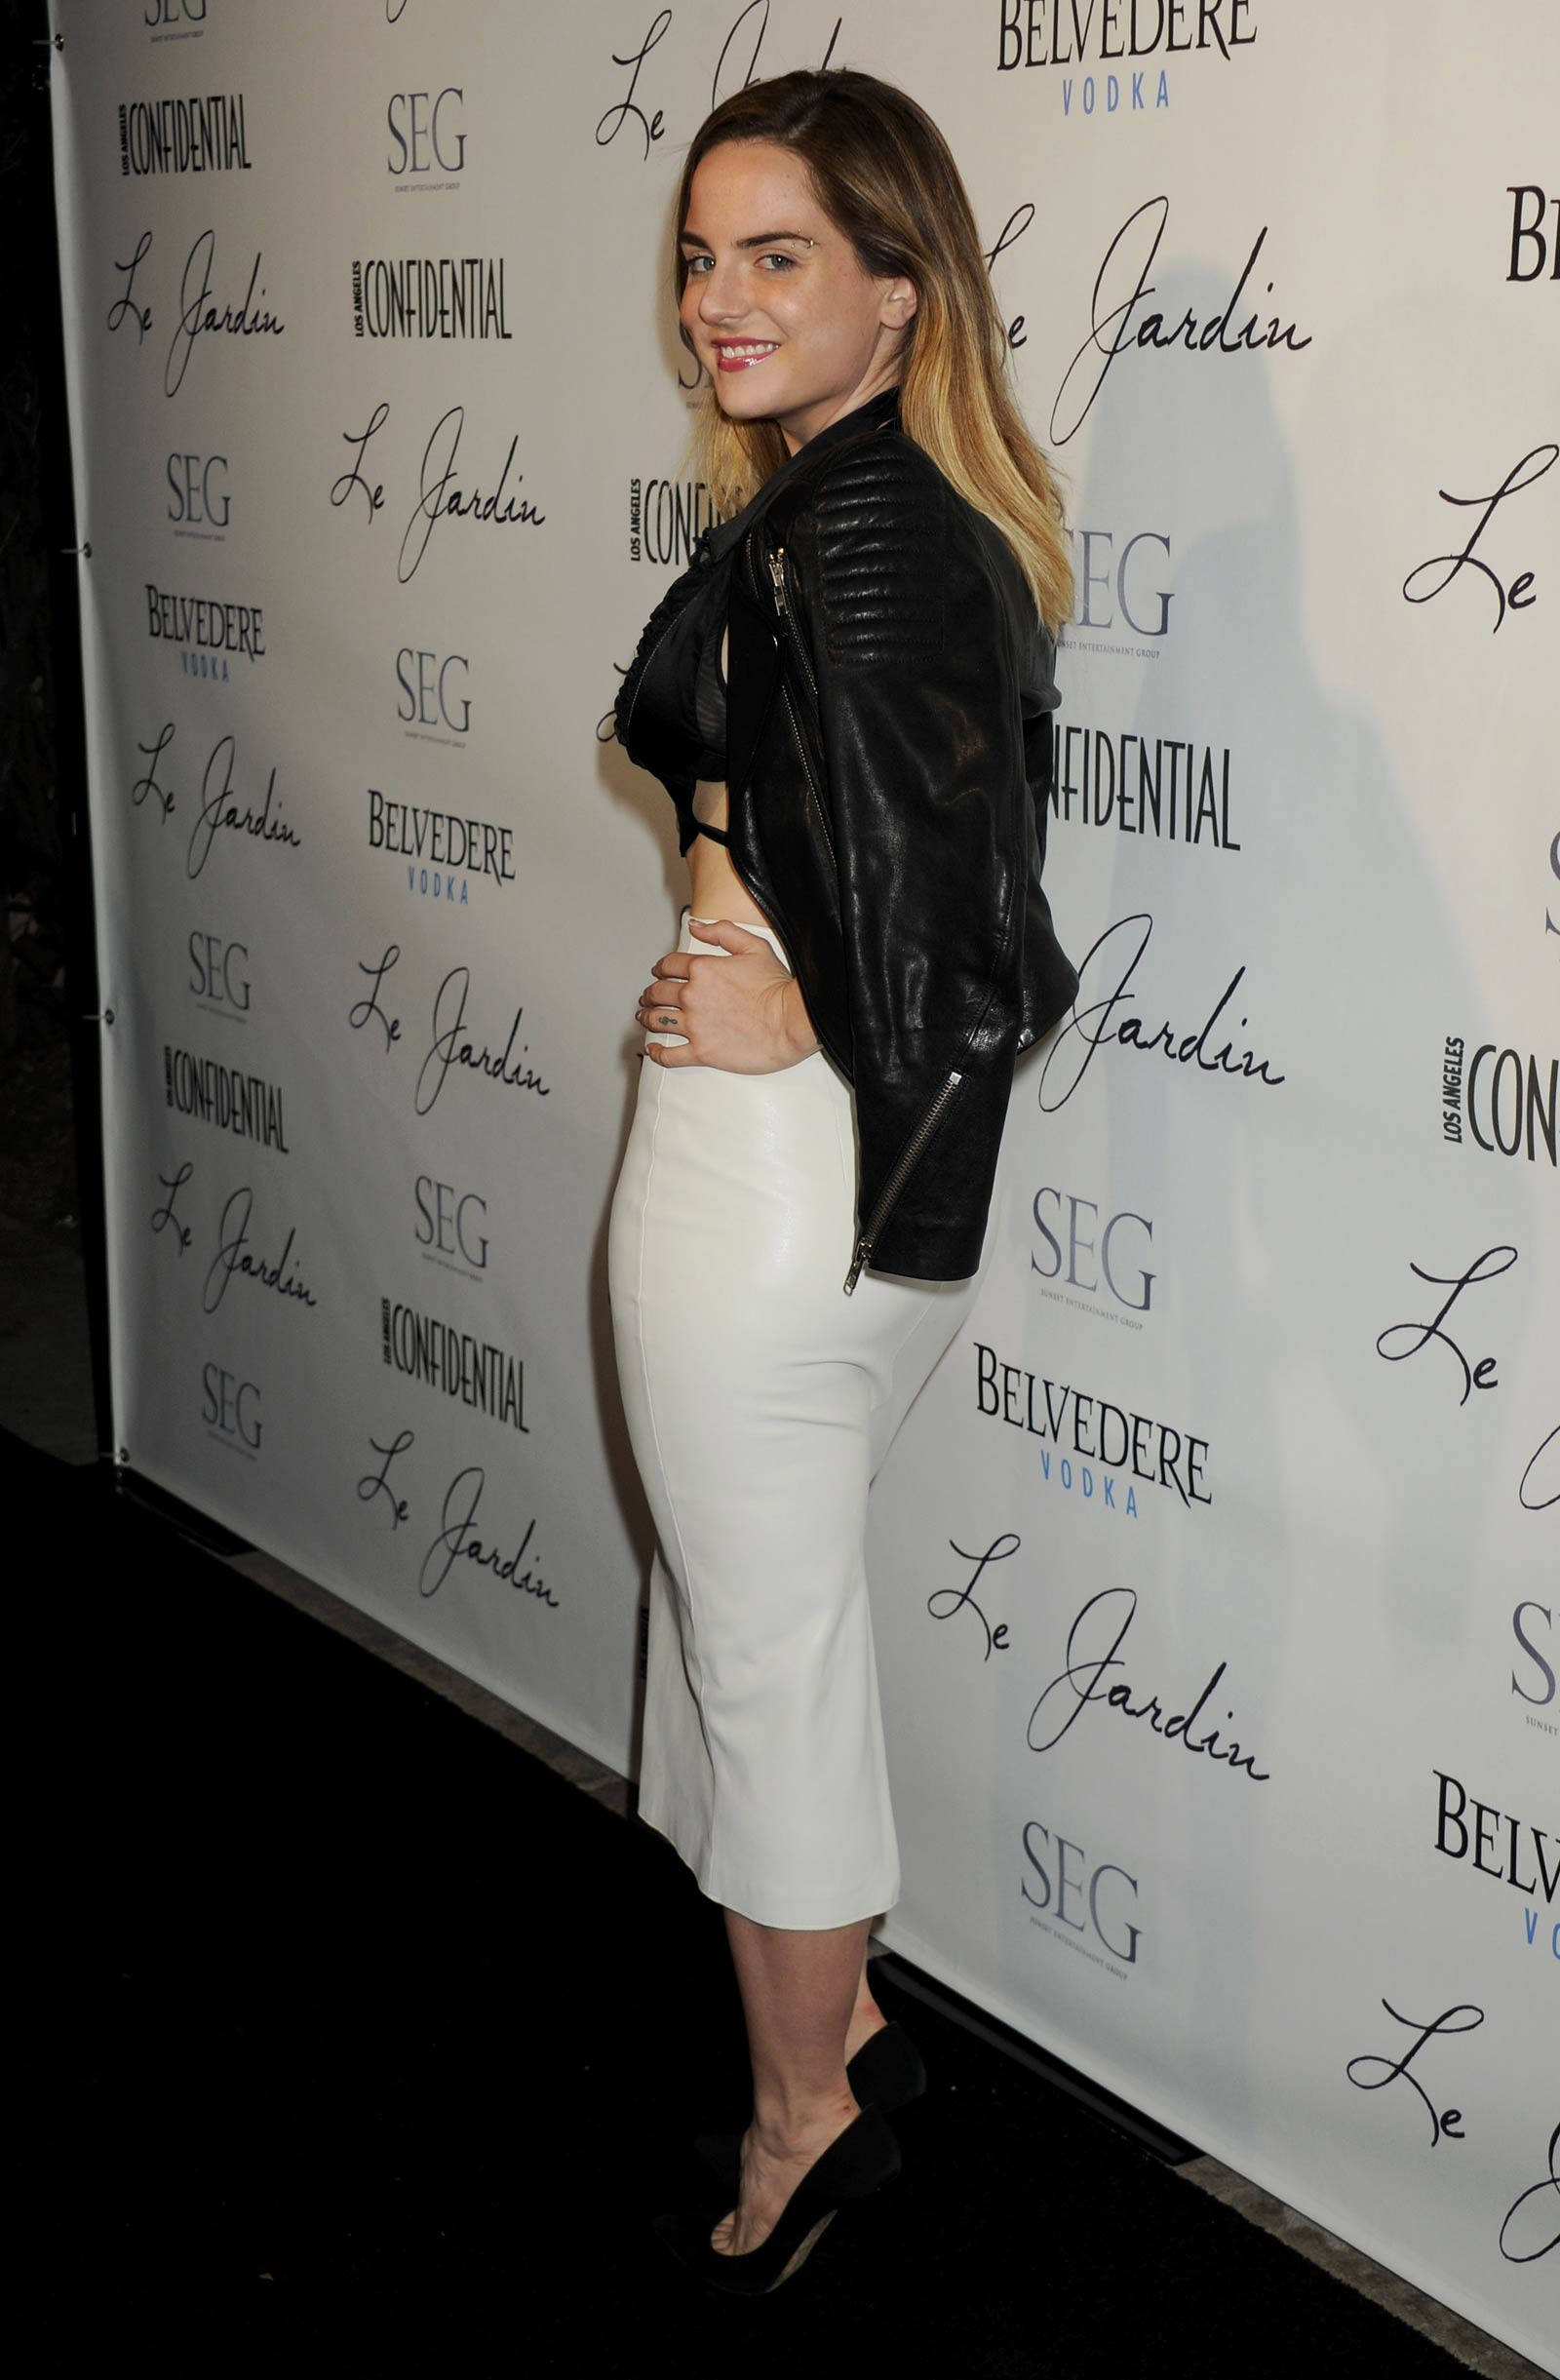 Joanna Levesque attends Grand Opening Of Le Jardin